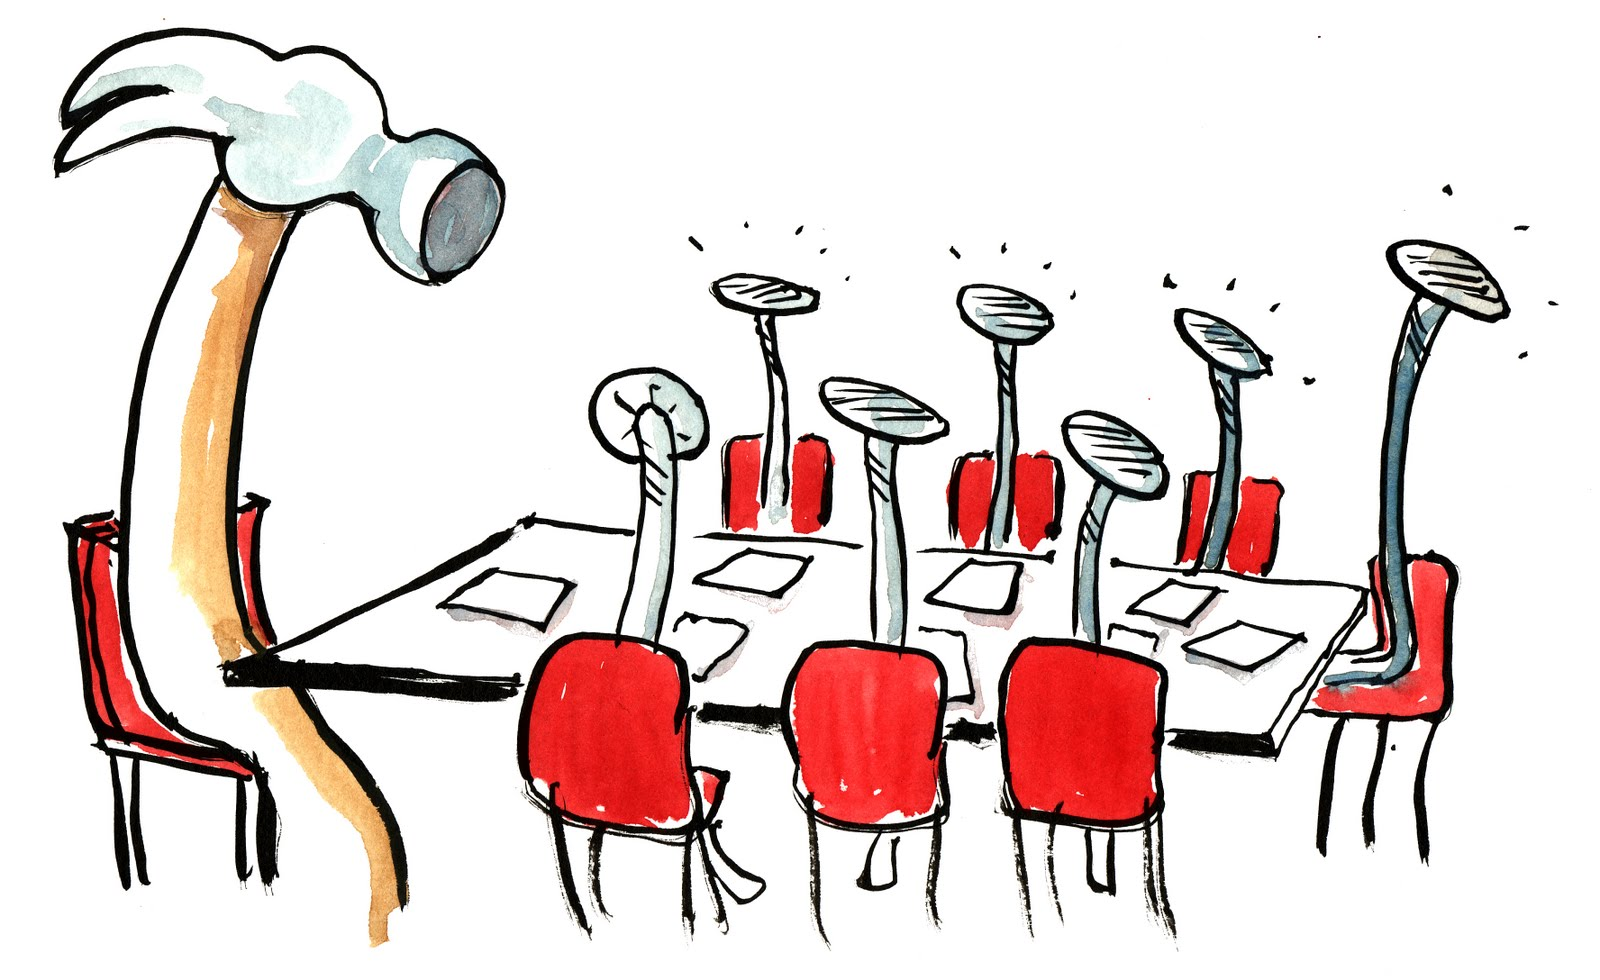 employee meeting clipart - photo #13